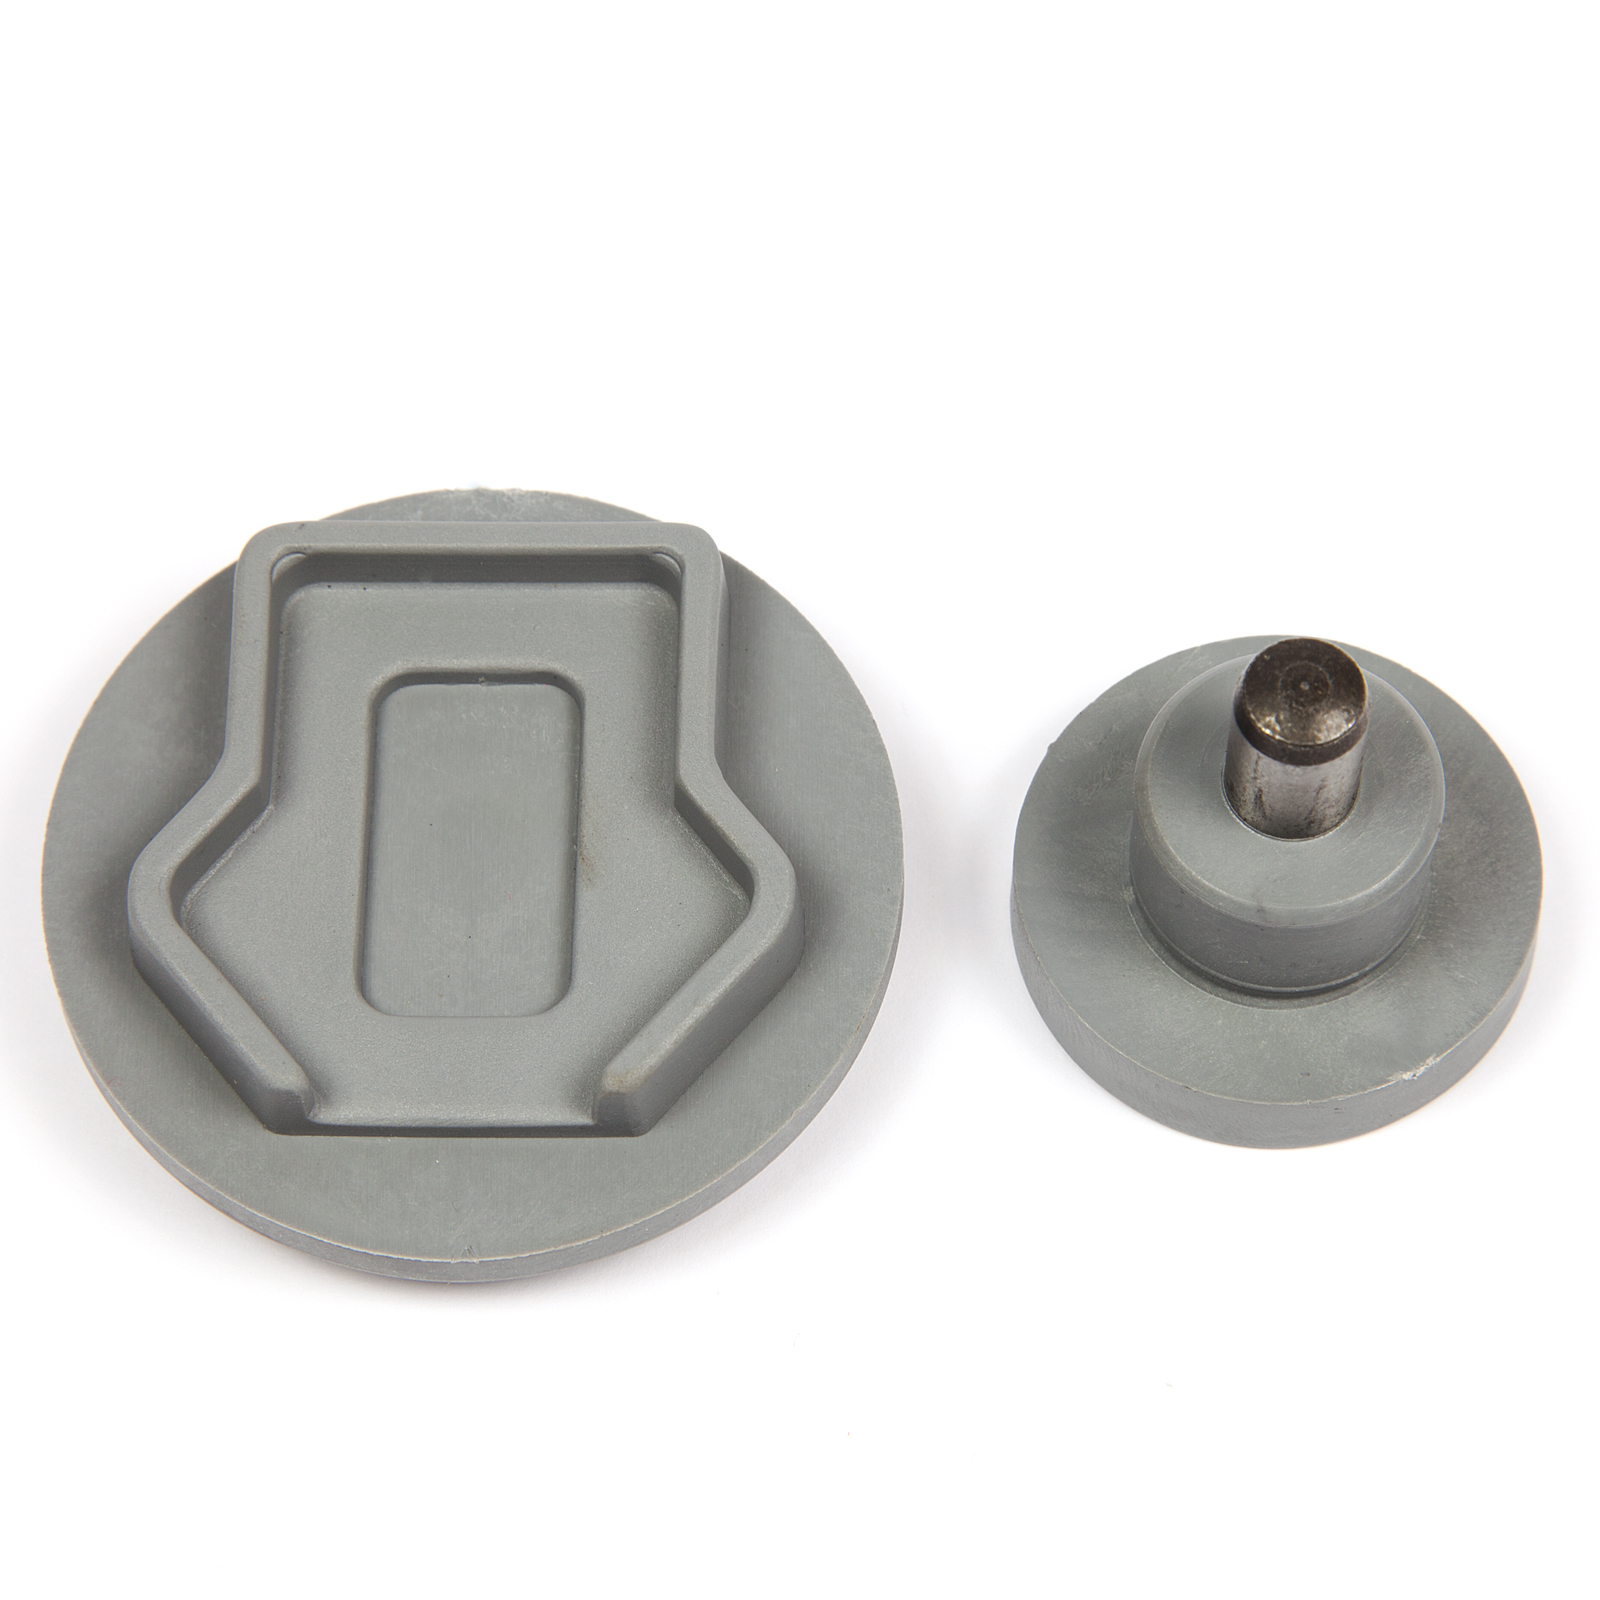 35mm x 34mm Mini Shirt Shaped C25 Keyringfab Assembly Tool to suit MX-D Keyring (UM-MX)